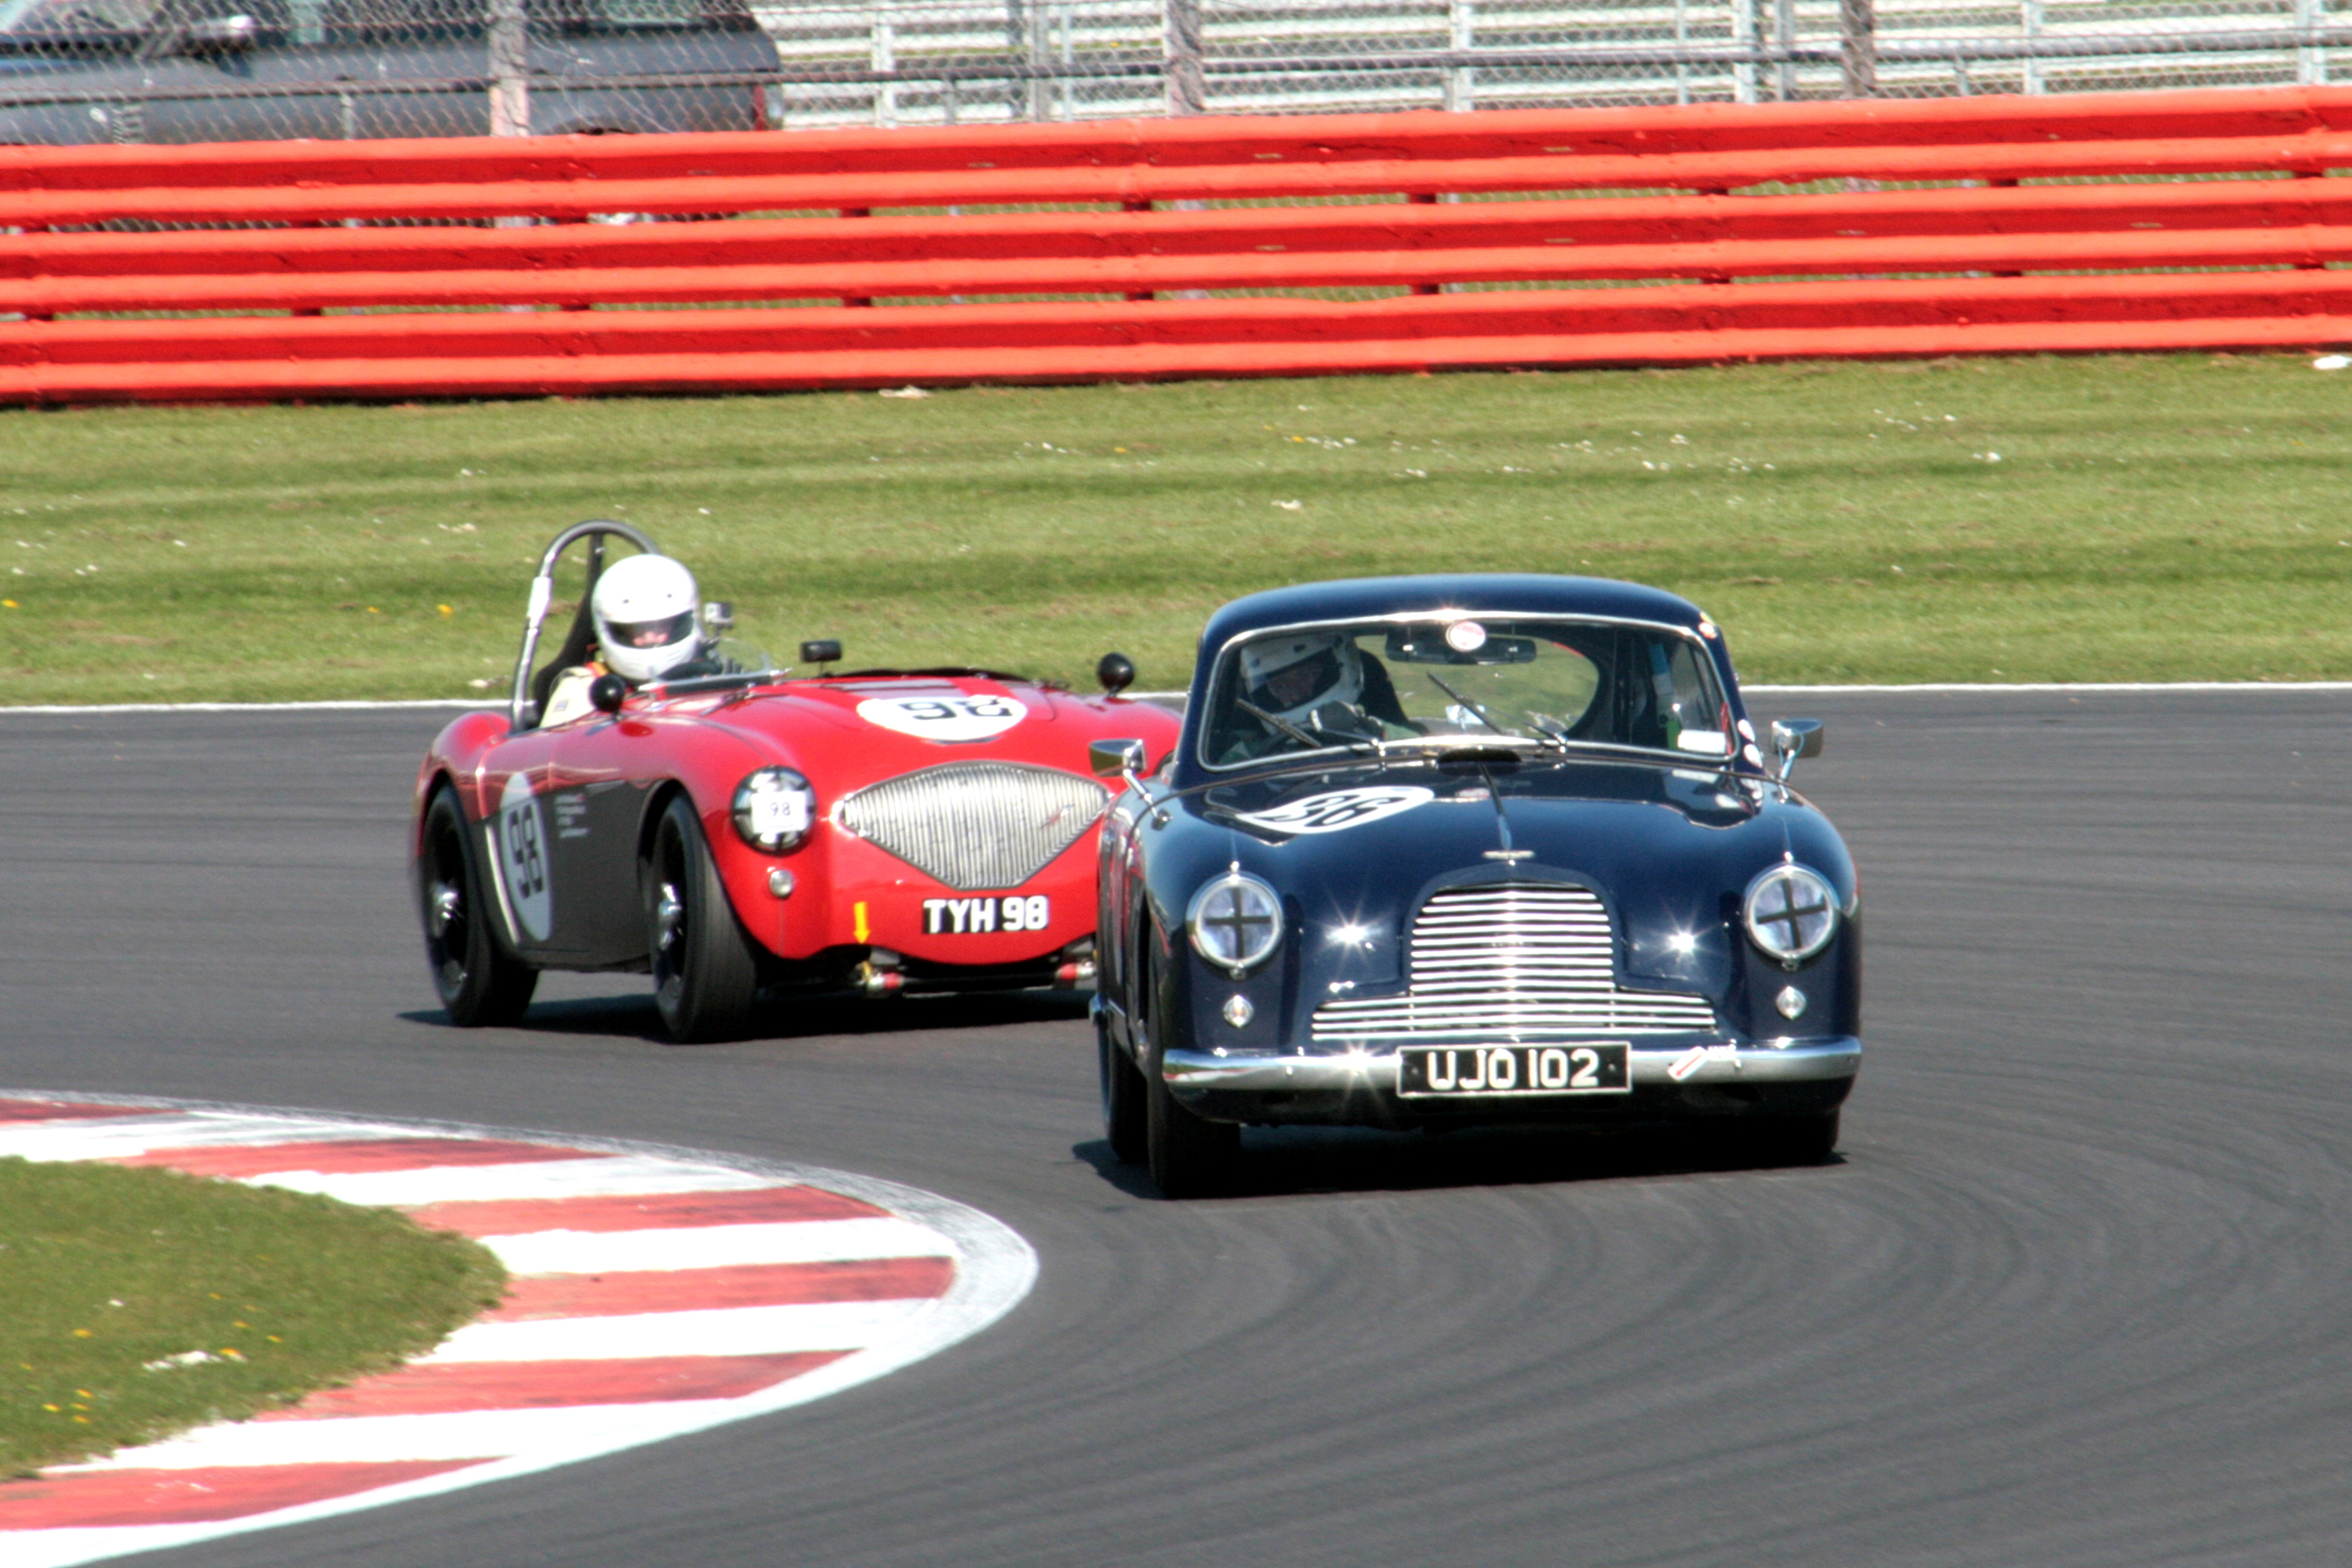 Nigel Batchelor (Aston DB2/4) and Nick Matthews (Austin Healey 100/4) finishedthis close together in 9th and 10threspectively                                              Photo - John Turner